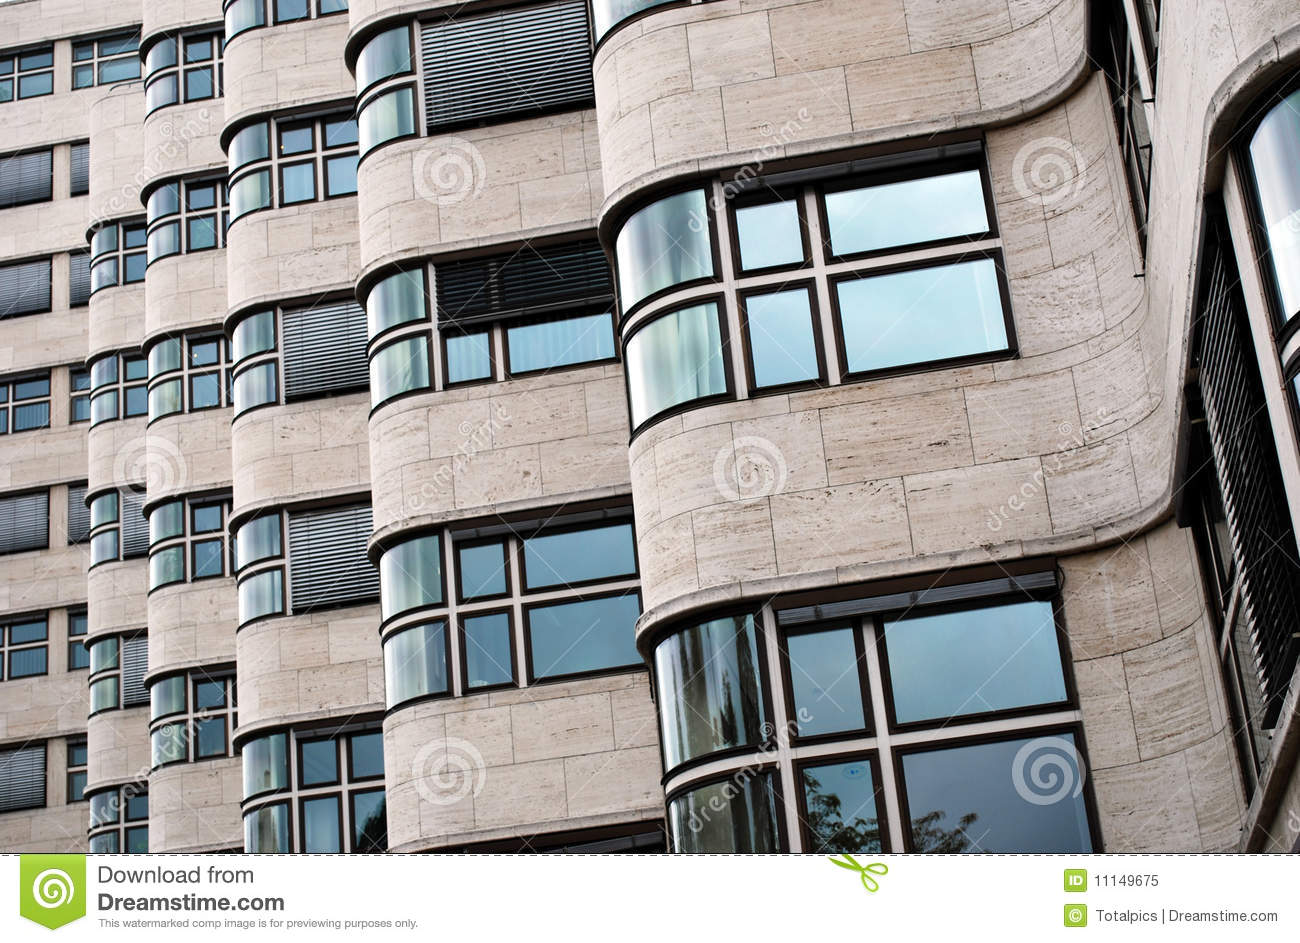 Bauhaus architecture stock image image of architecture for Architecture bauhaus